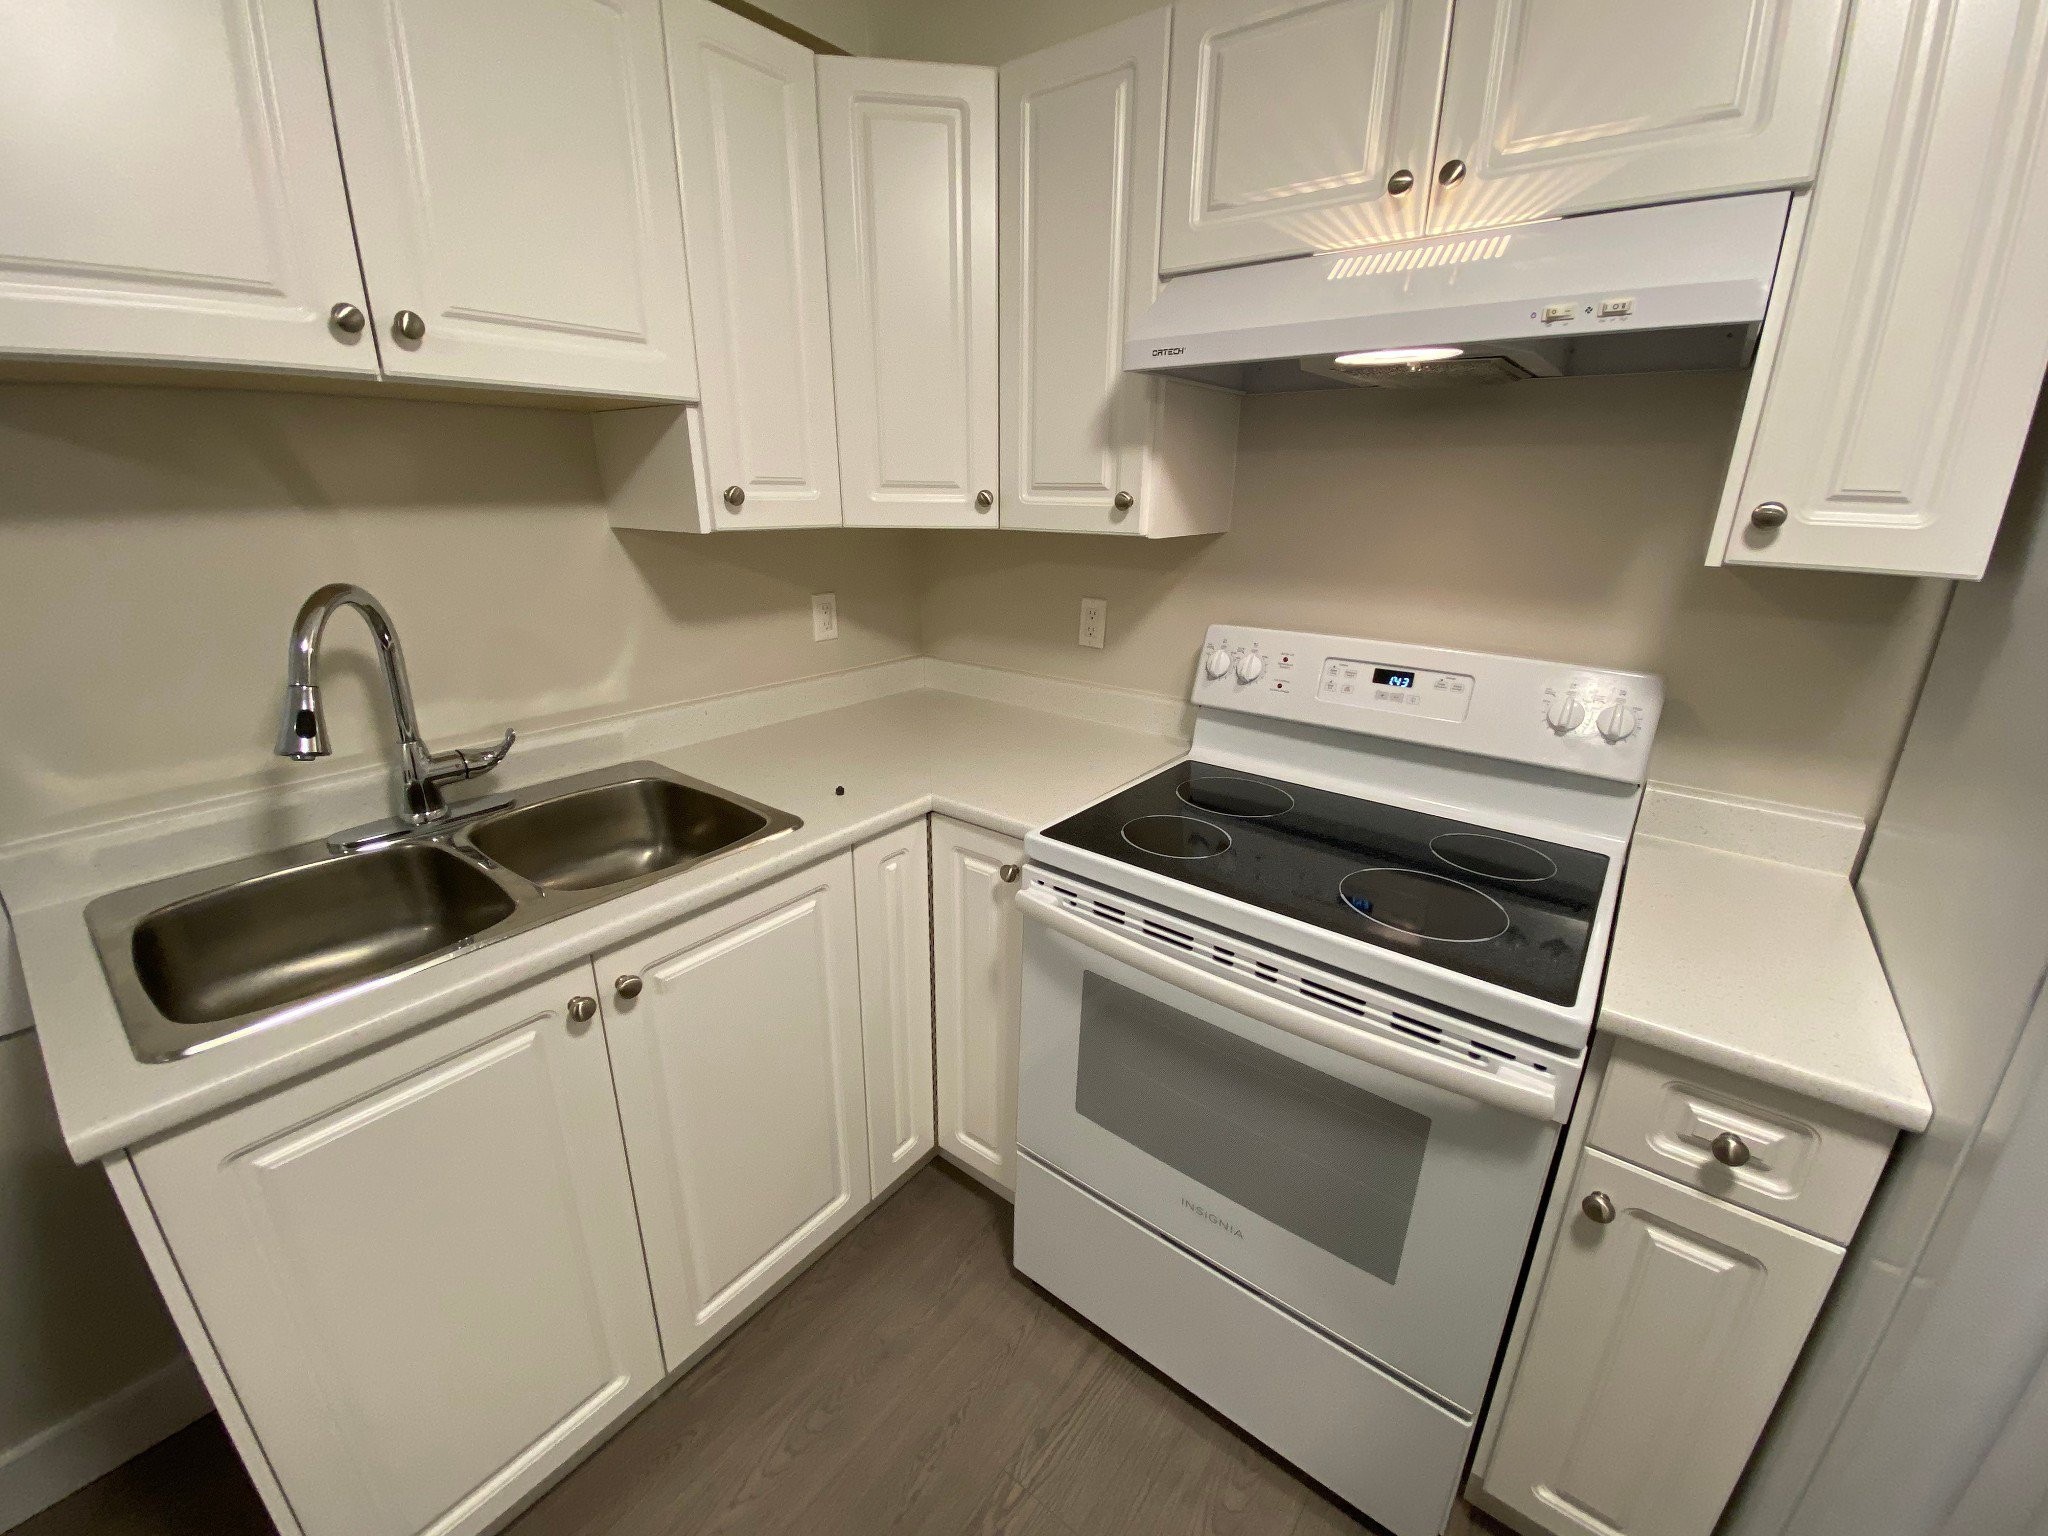 Main Photo: 7xx1 Williams Rd in Richmond: Broadmoor Multifamily for rent